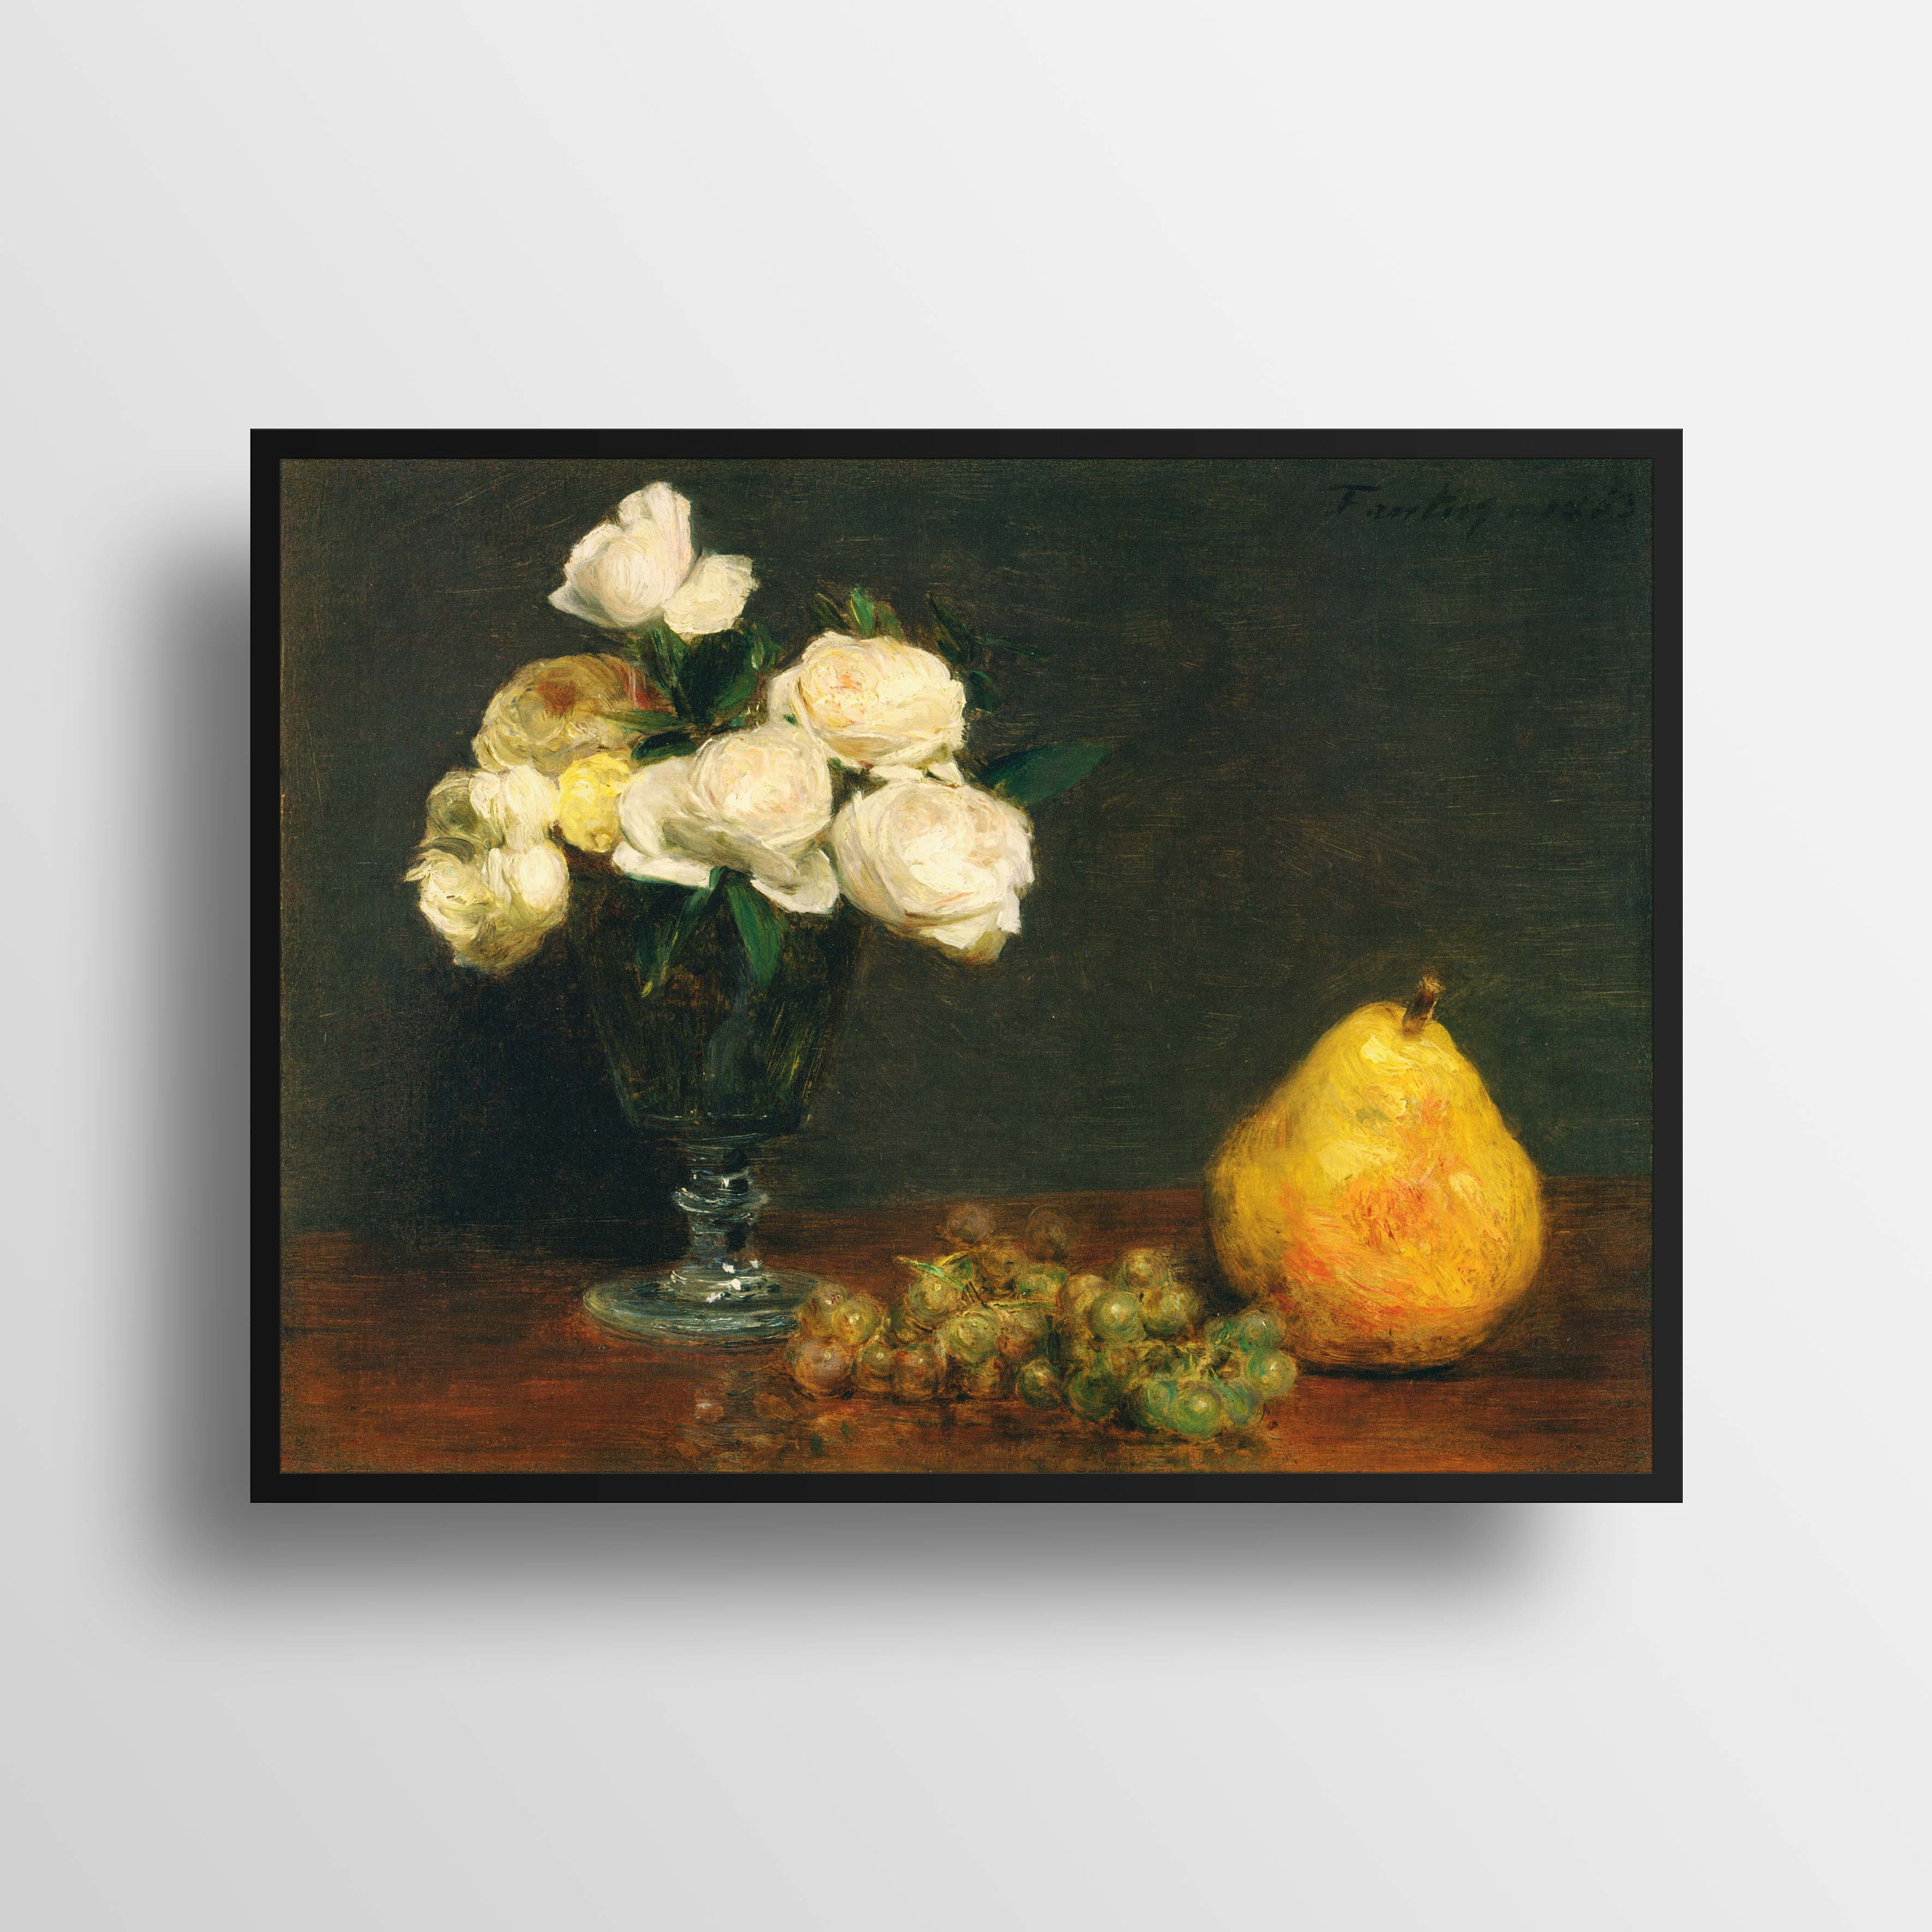 Henri Fantin Latour * Still Life With Roses And Fruit * Fine Art Print * Painting Art Print * Wall Art * Wall Decor * Fine Art Reproduction Within Latour Wall Decor (View 6 of 30)